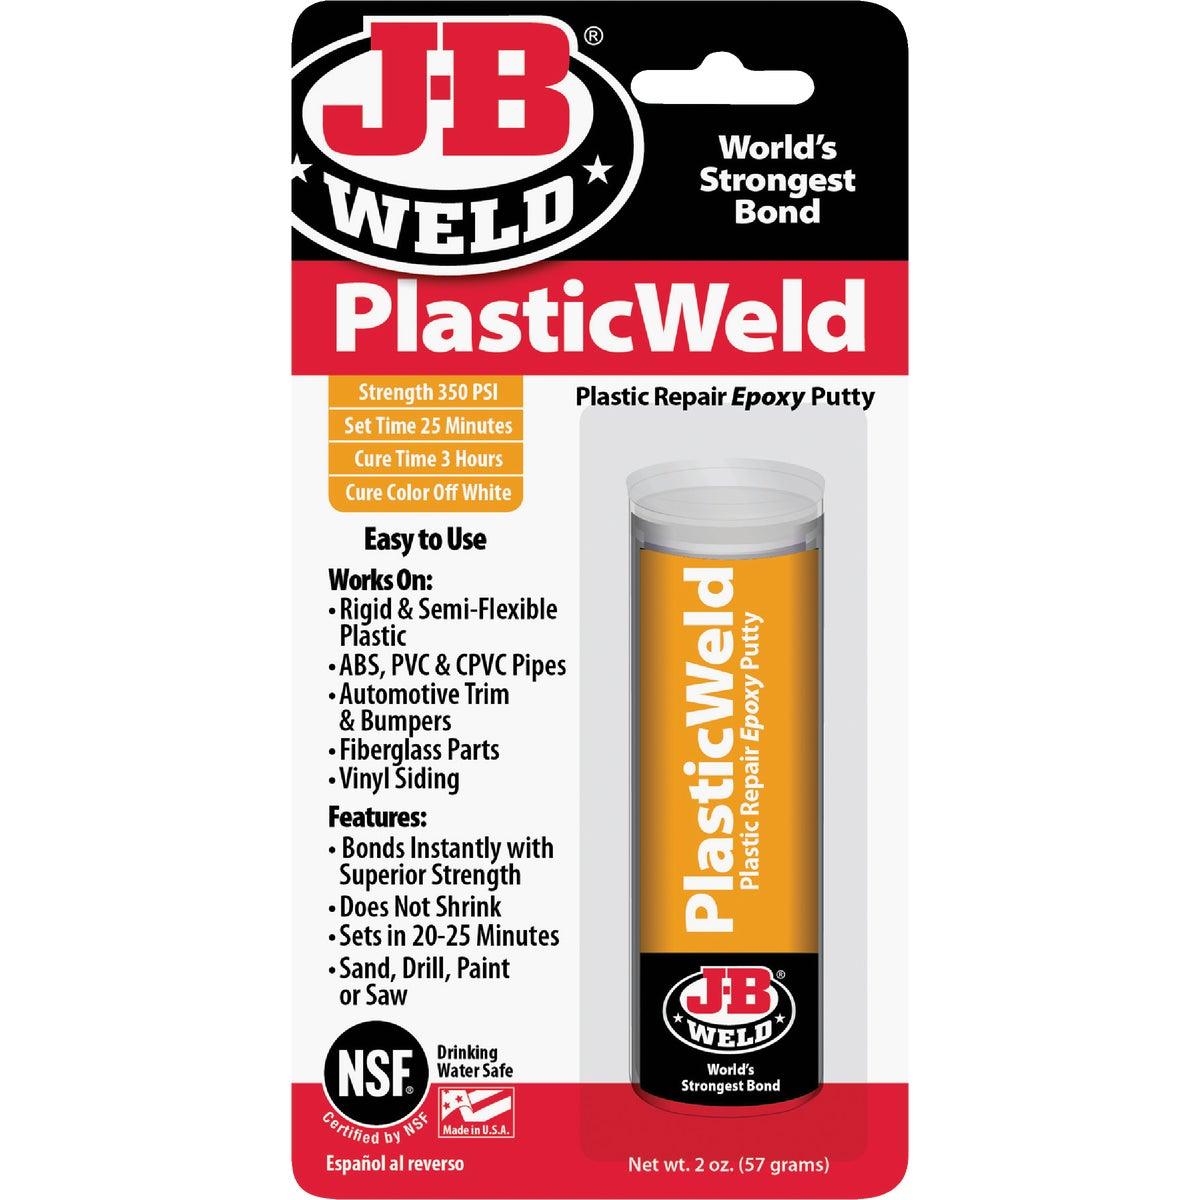 2OZ PLASTICWELD EPOXY - 8237 by J B Weld Co